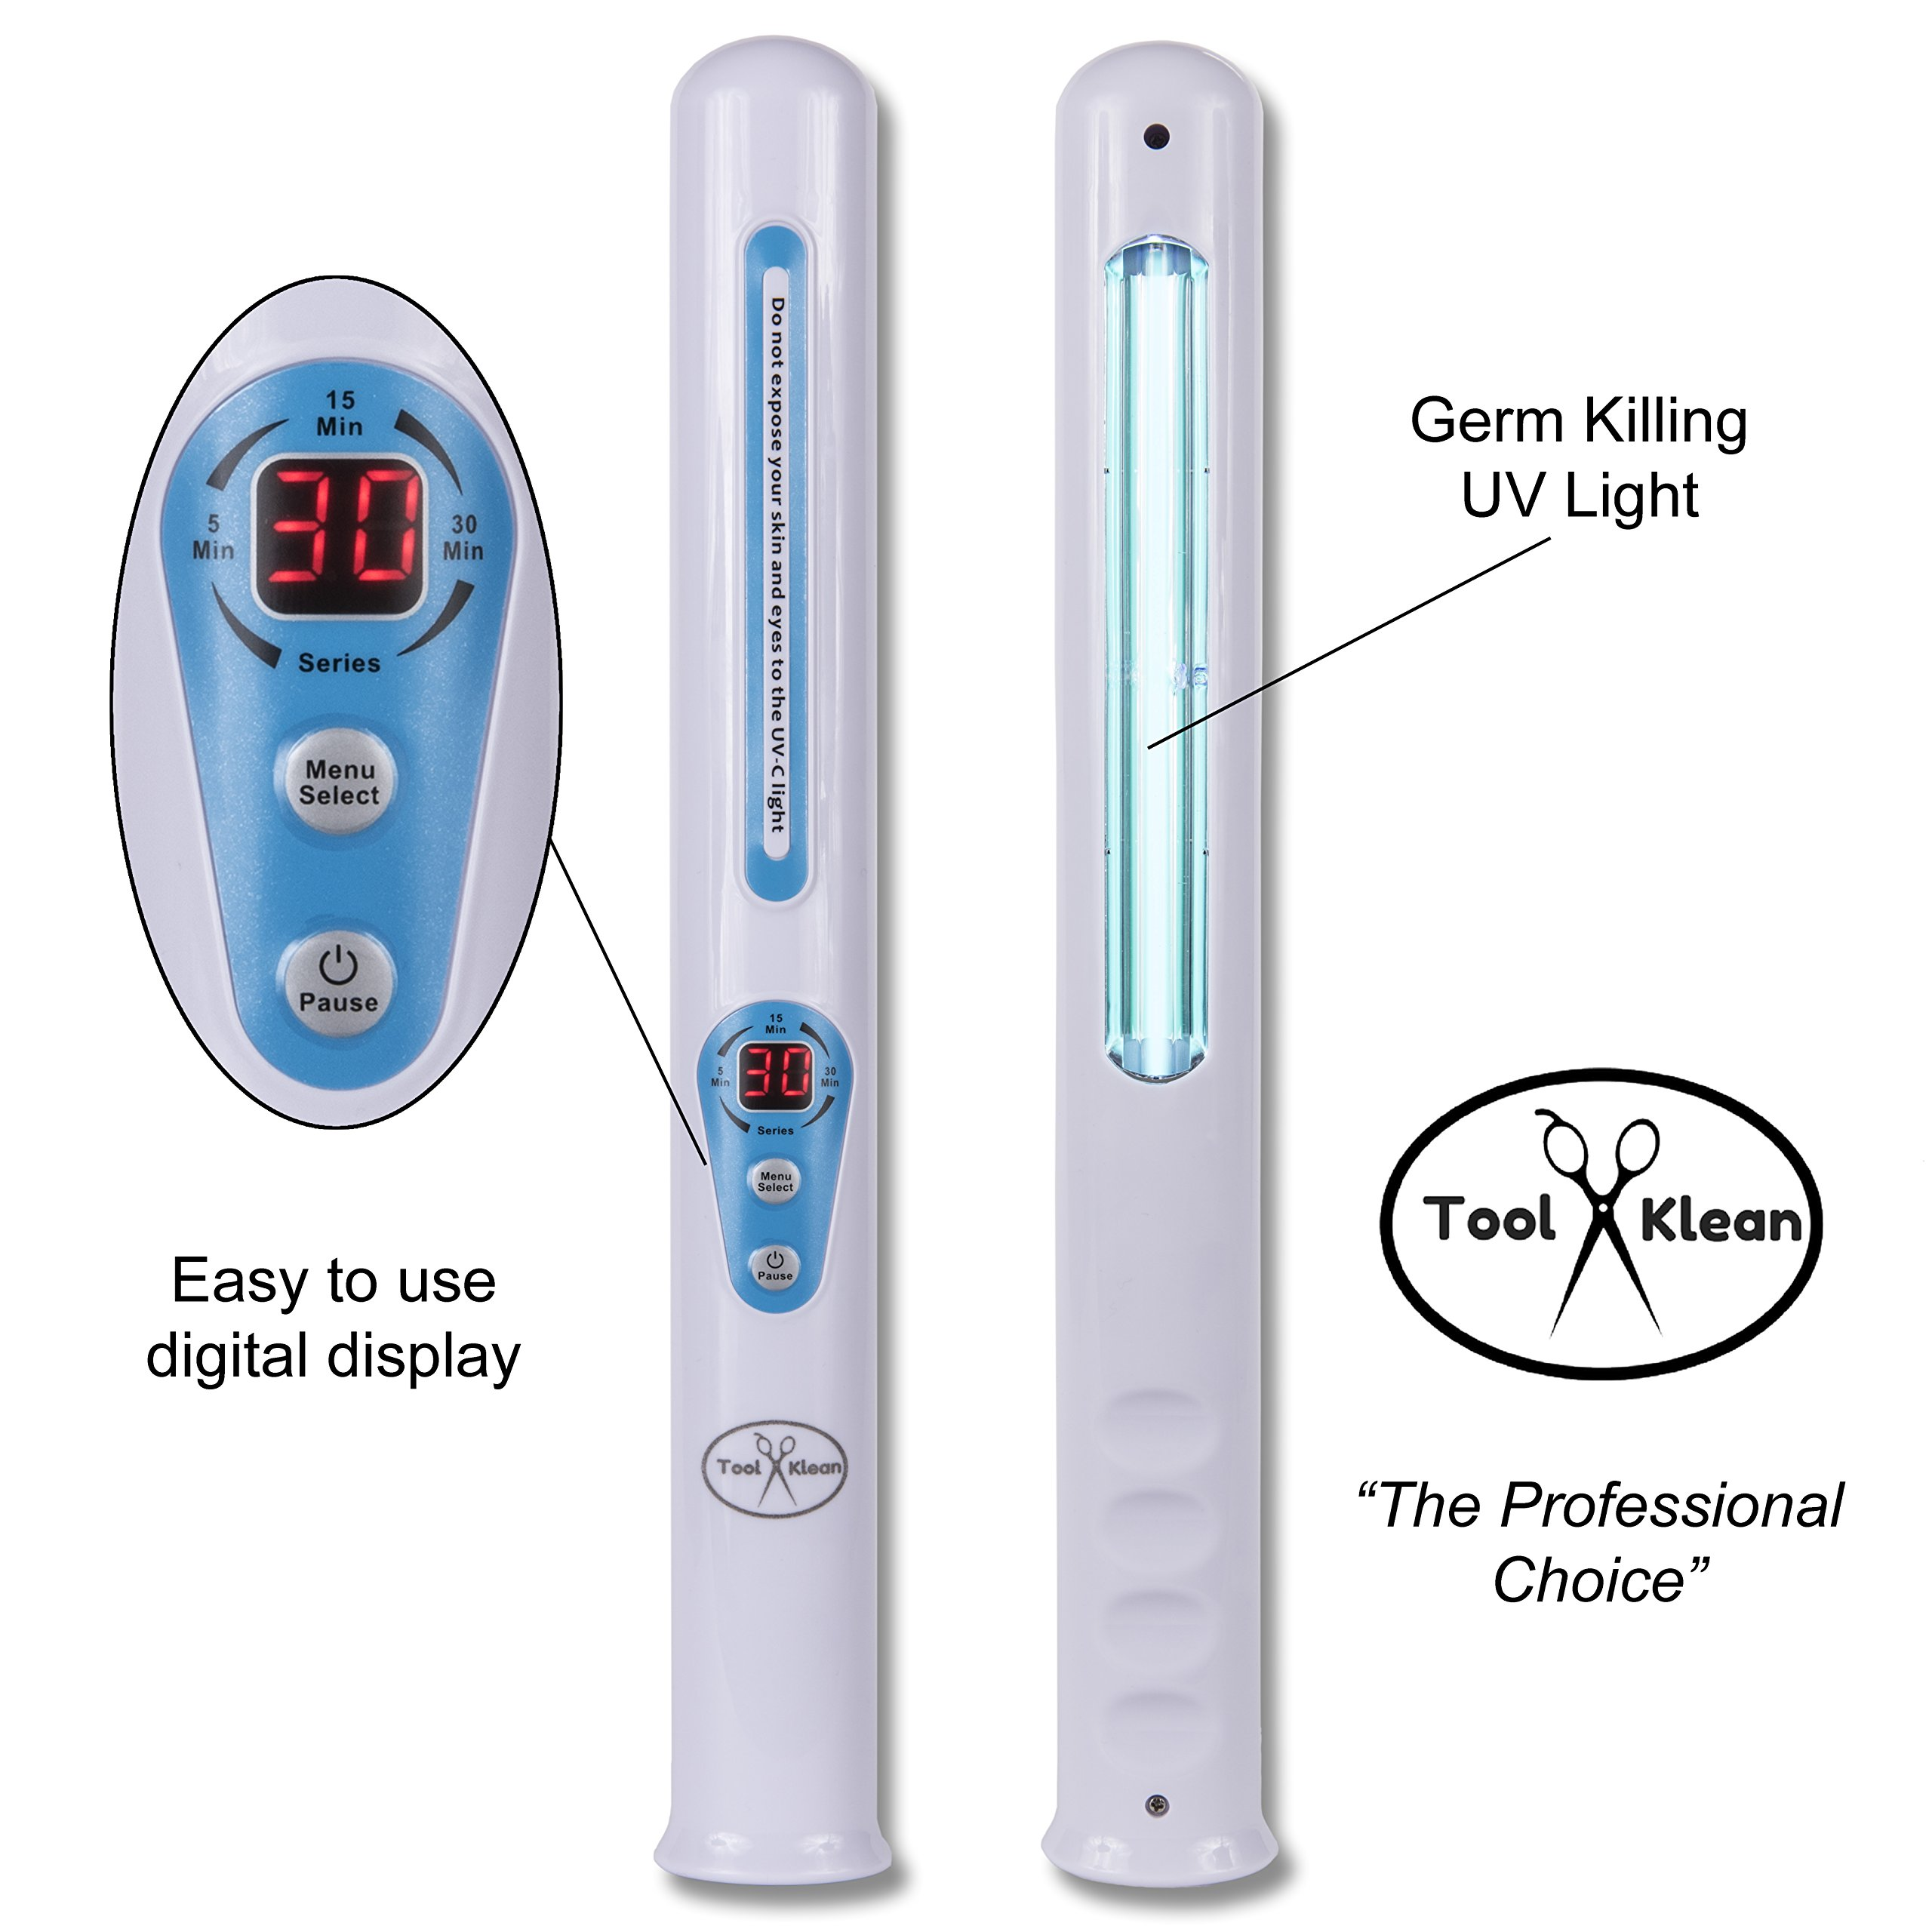 Tool Klean UV Light Stik, USA Company, The Professional Choice, Destroys Germs Fast, Destroys flea Eggs & Bed Bugs Quickly and Safely, Portable Great for Travel, Easy to use Digital Timer